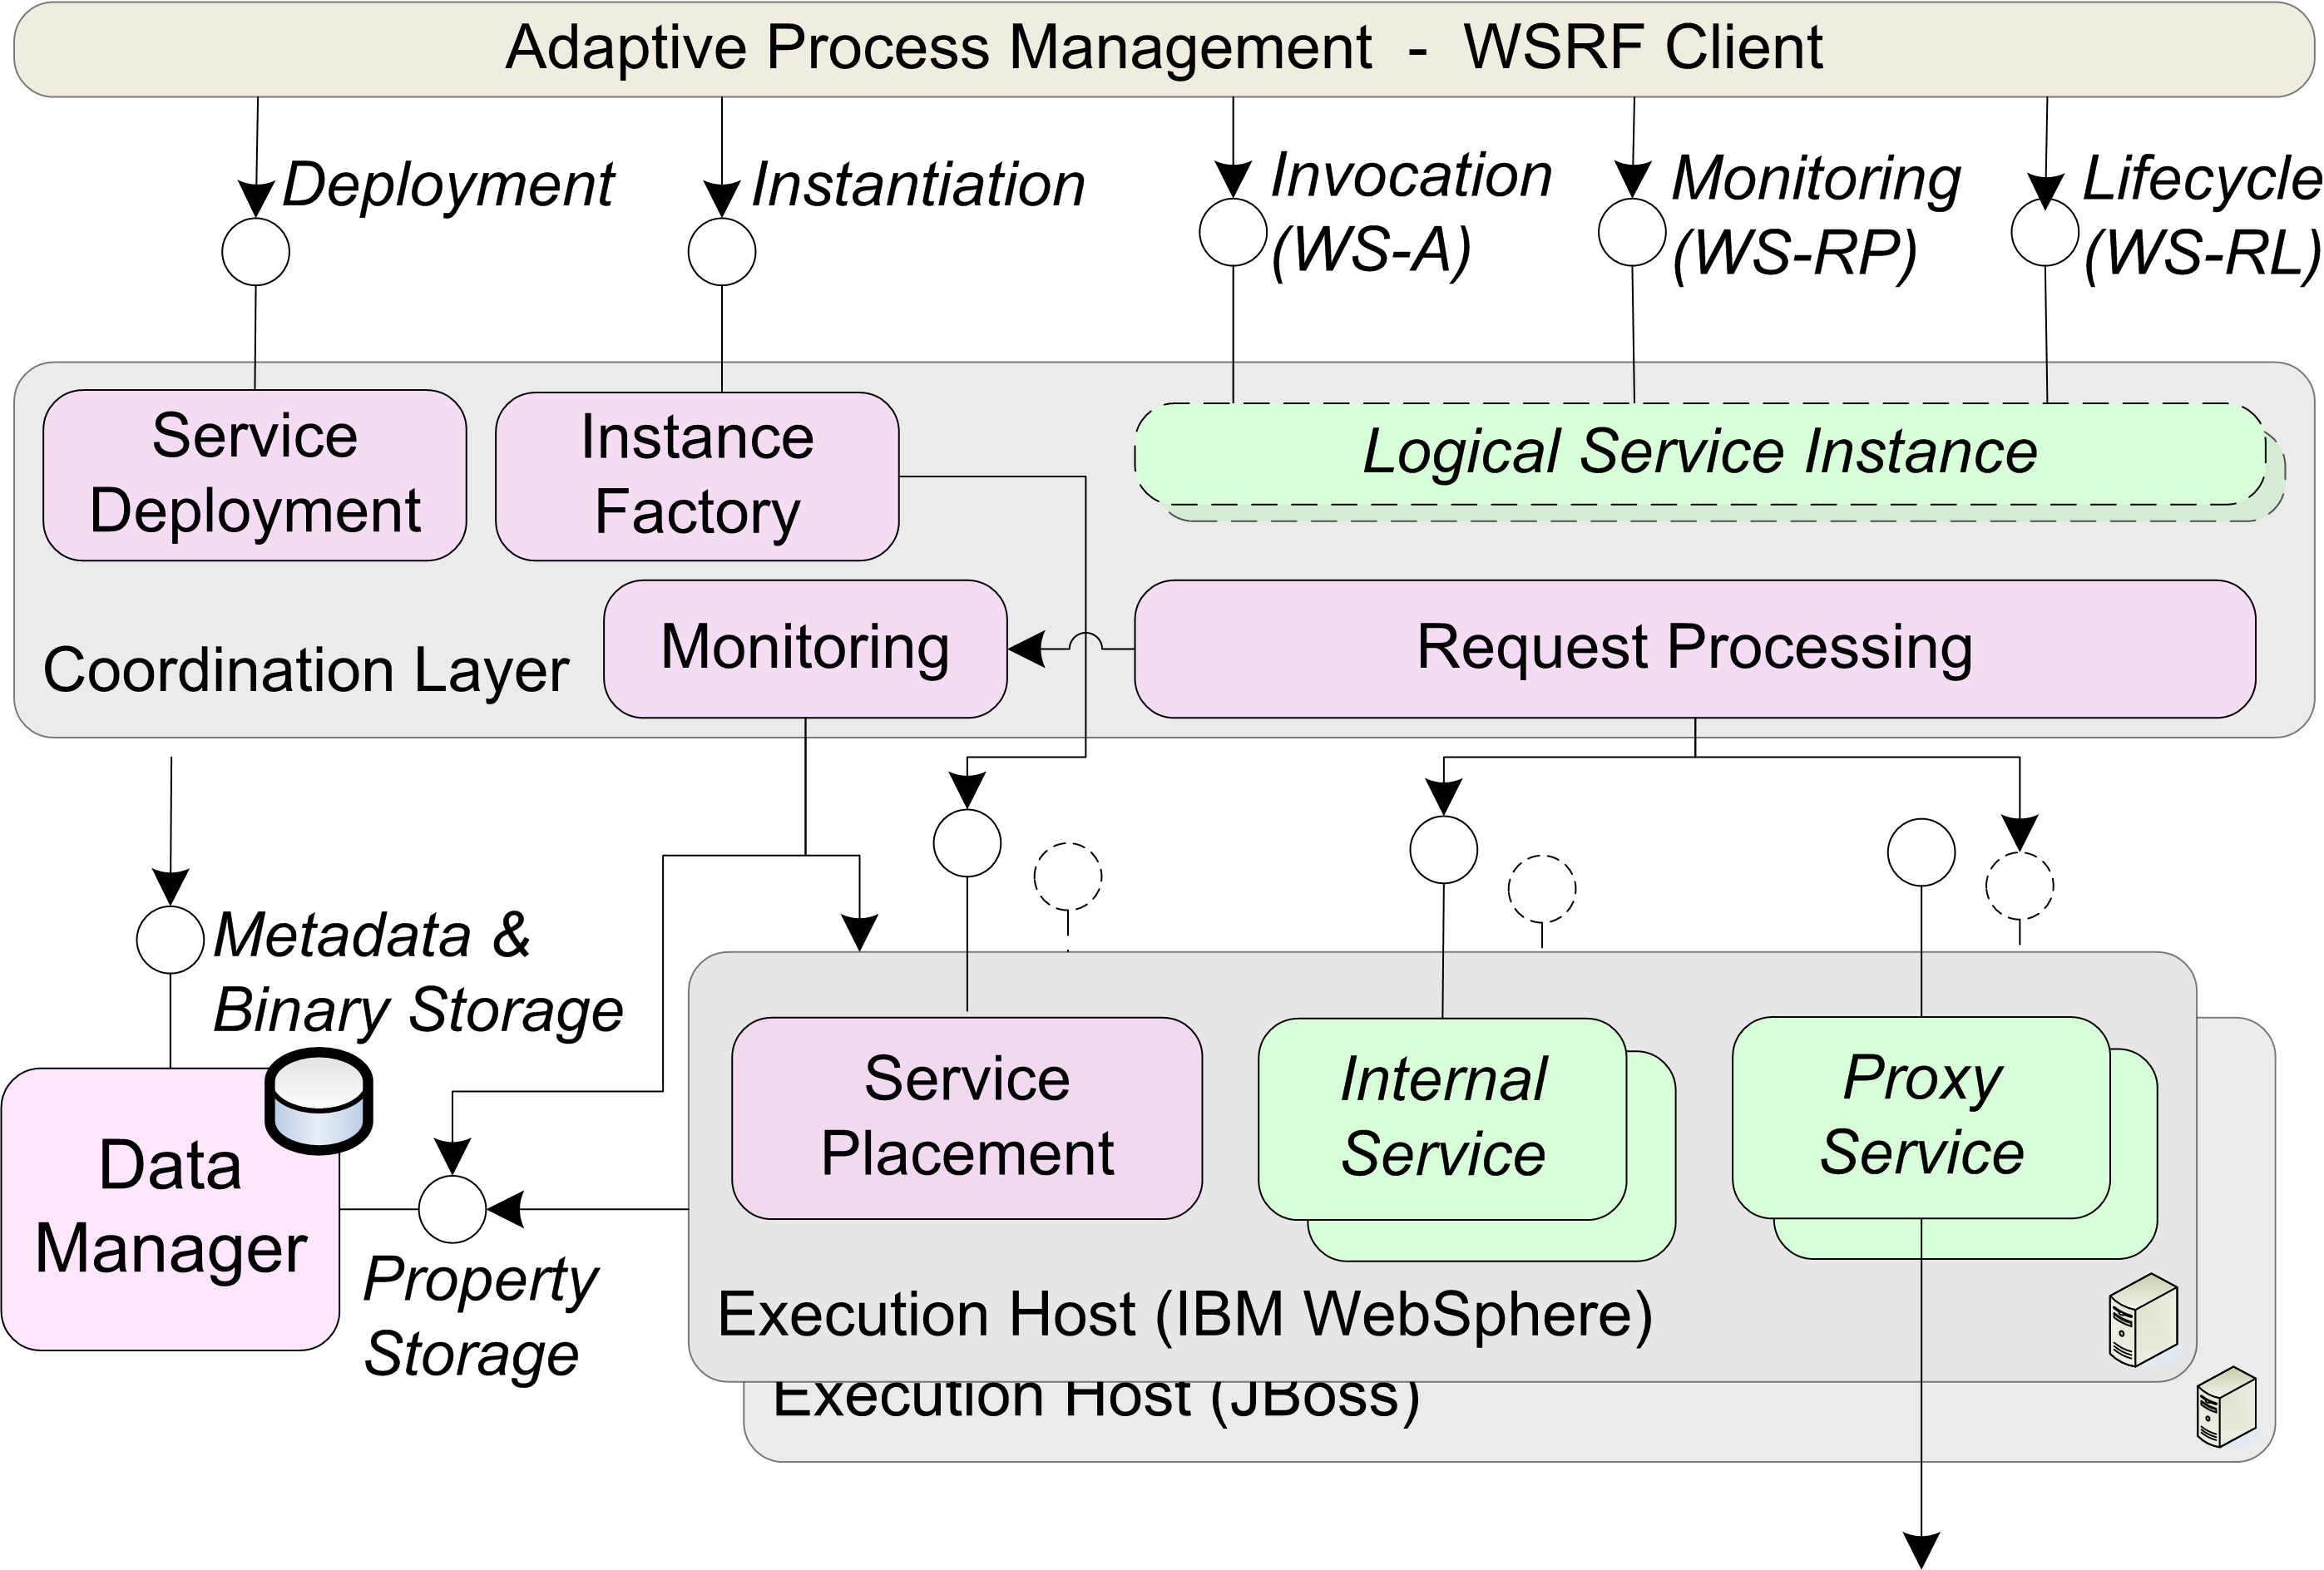 implementation uses the specifications for the Web Services Resource Framework (WSRF) to allow interaction with stateful SOAP implementations.